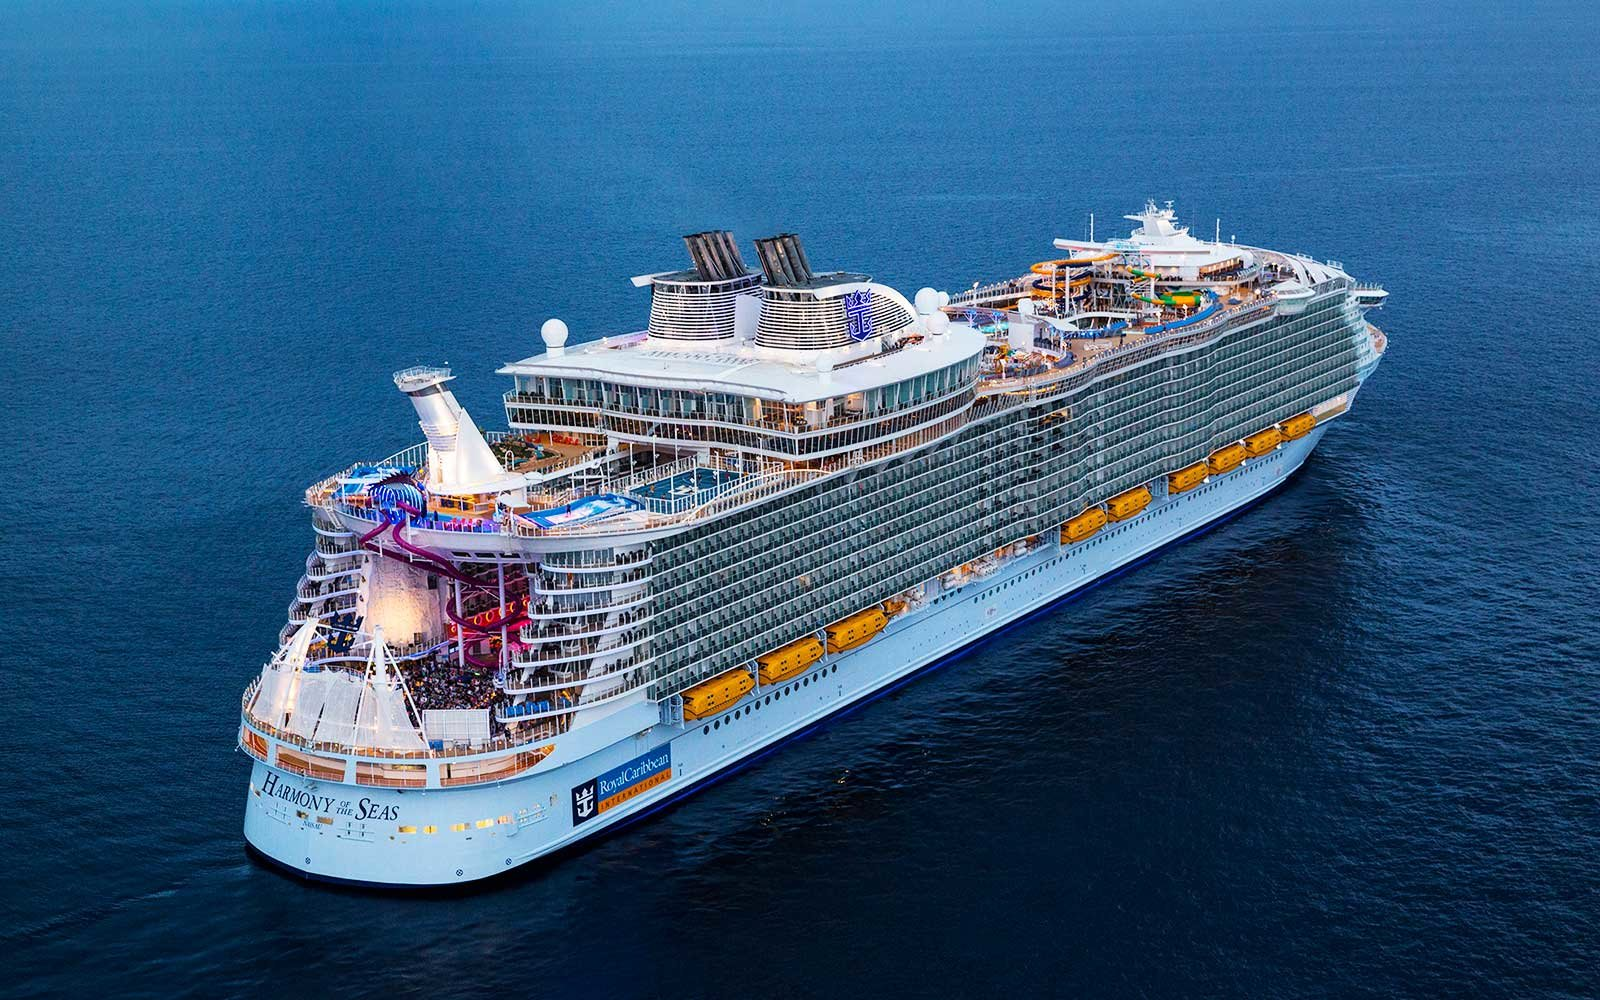 Explore The Beauty Of Caribbean: Five Things To Know About Royal Caribbean International's